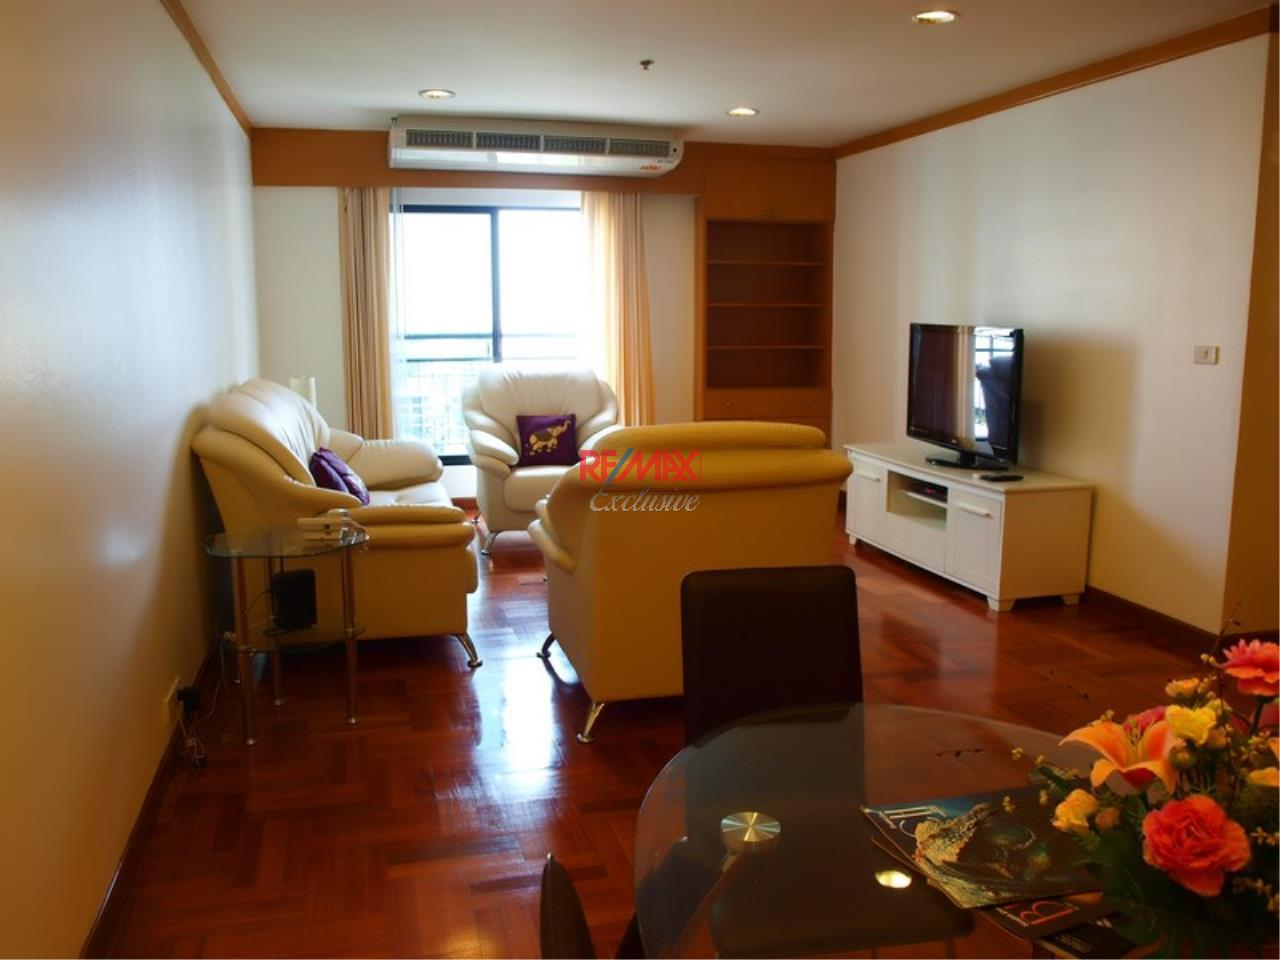 RE/MAX Exclusive Agency's Liberty Park II 3 Bedrooms, 2 Bathrooms 118 SQM For Sale With Tenant!! 1